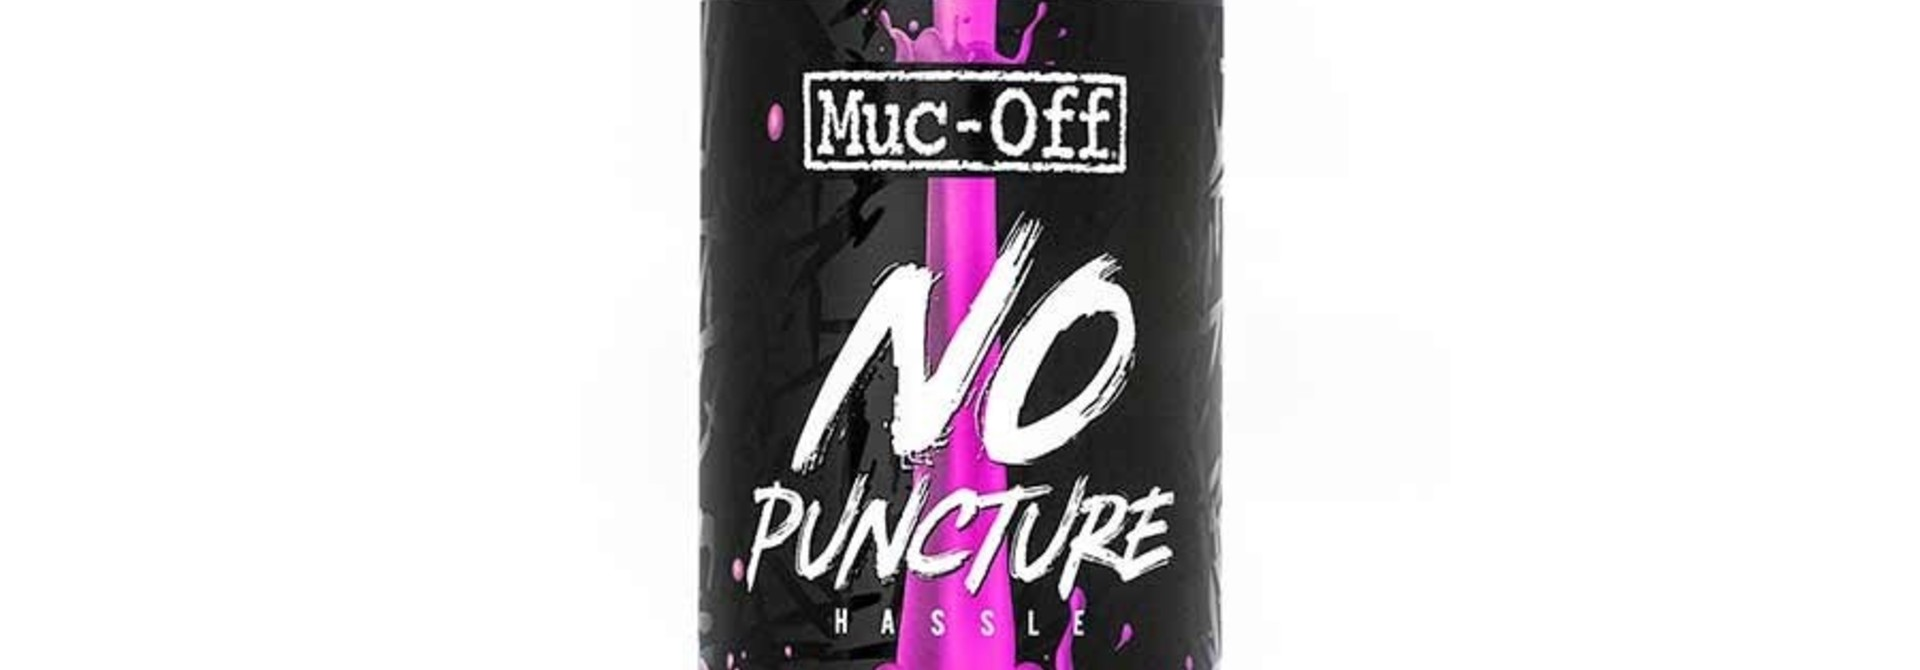 Muc-Off, No Puncture Hassle Tubeless Sealant, 1L